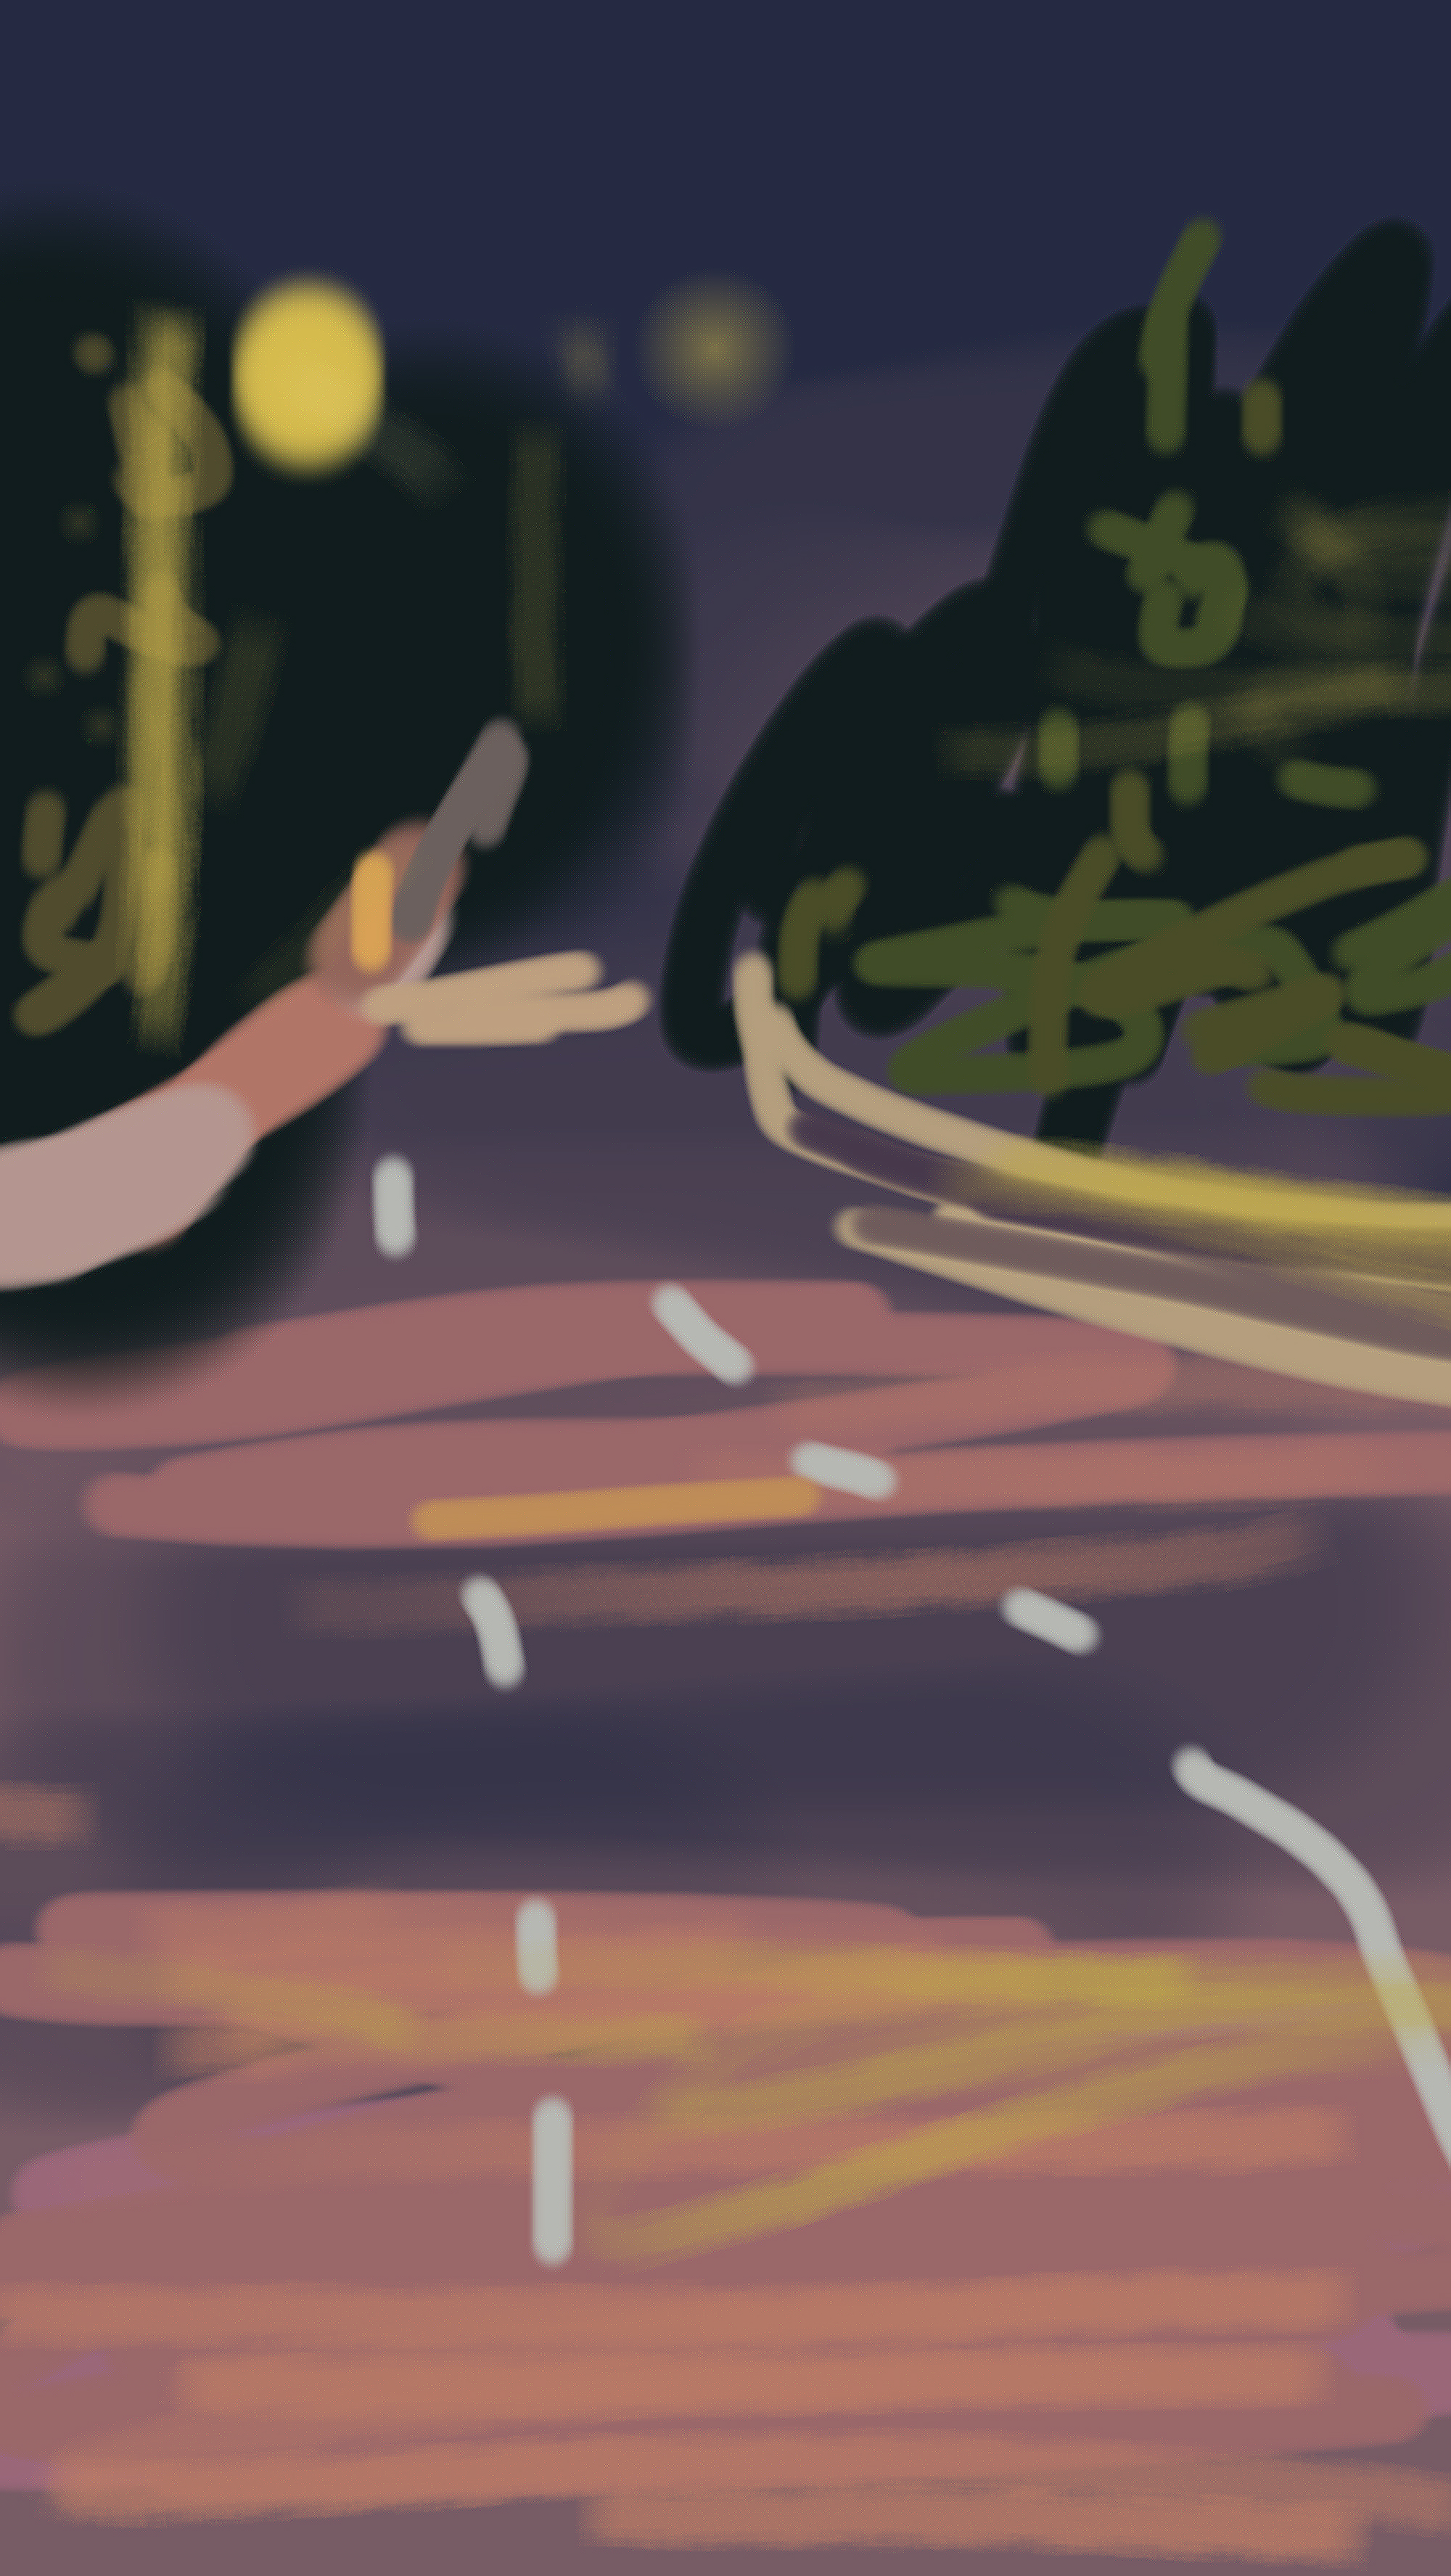 Doyle_IphoneDrawing_Road.jpg